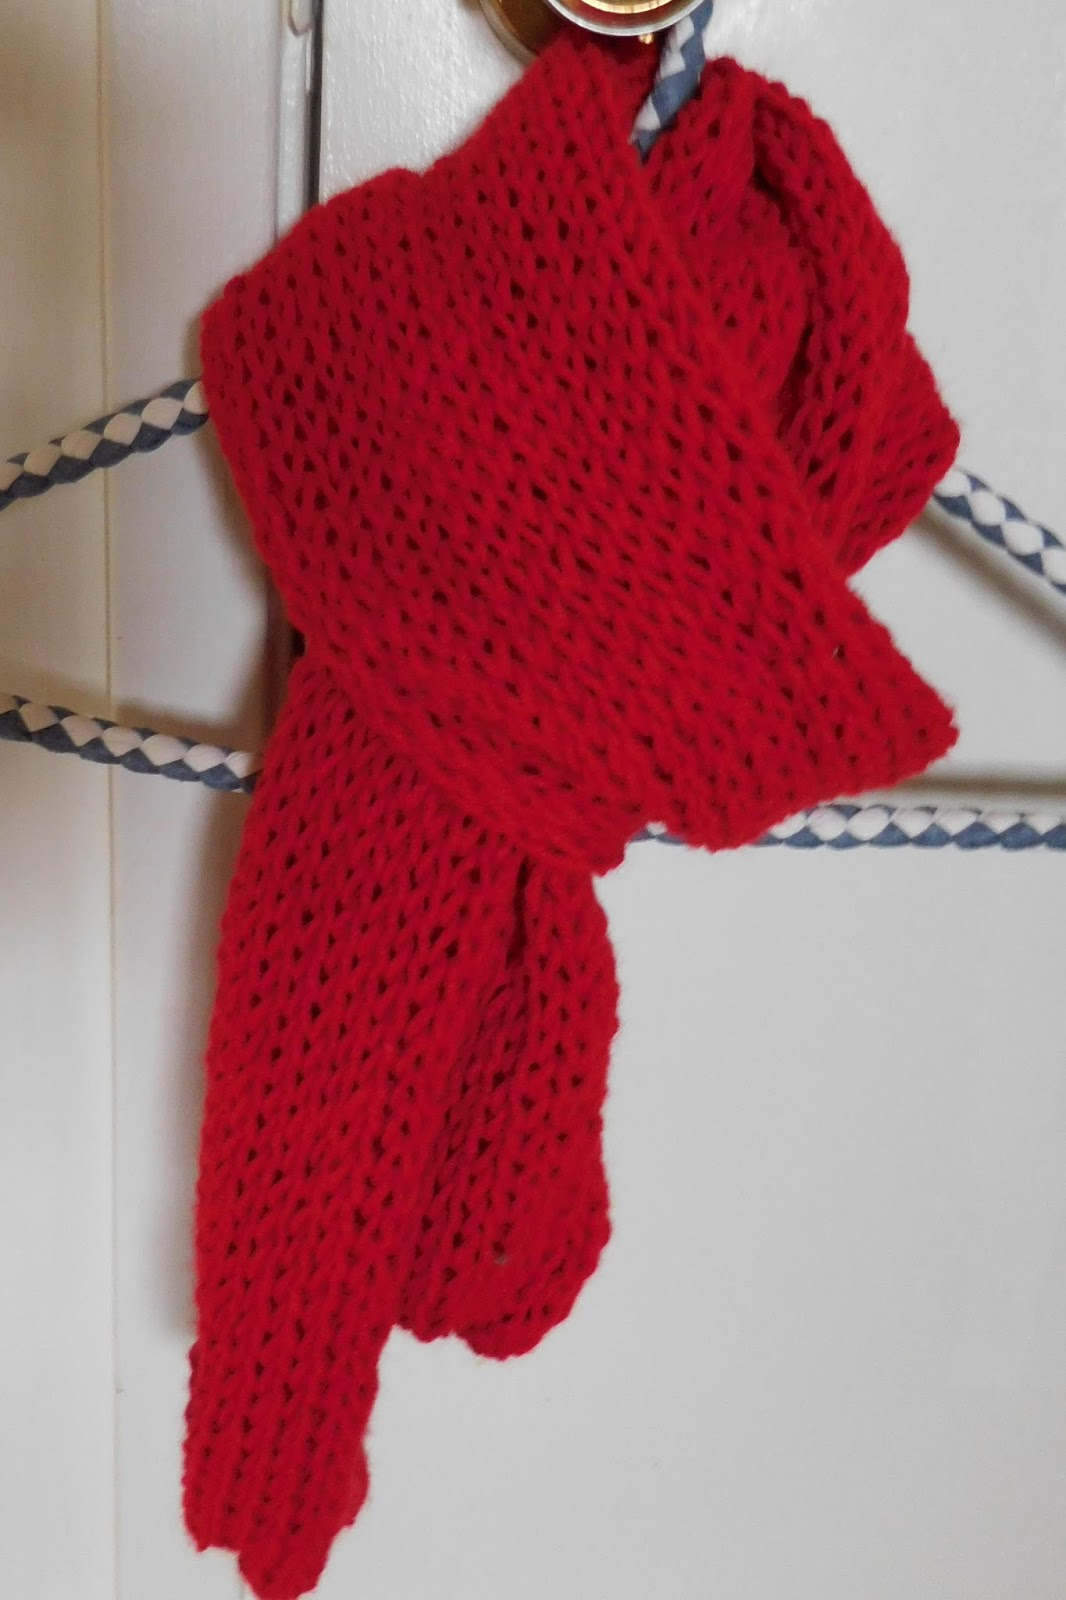 Needles To Say Red Scarf Pattern For Aids Awareness Week Campaign